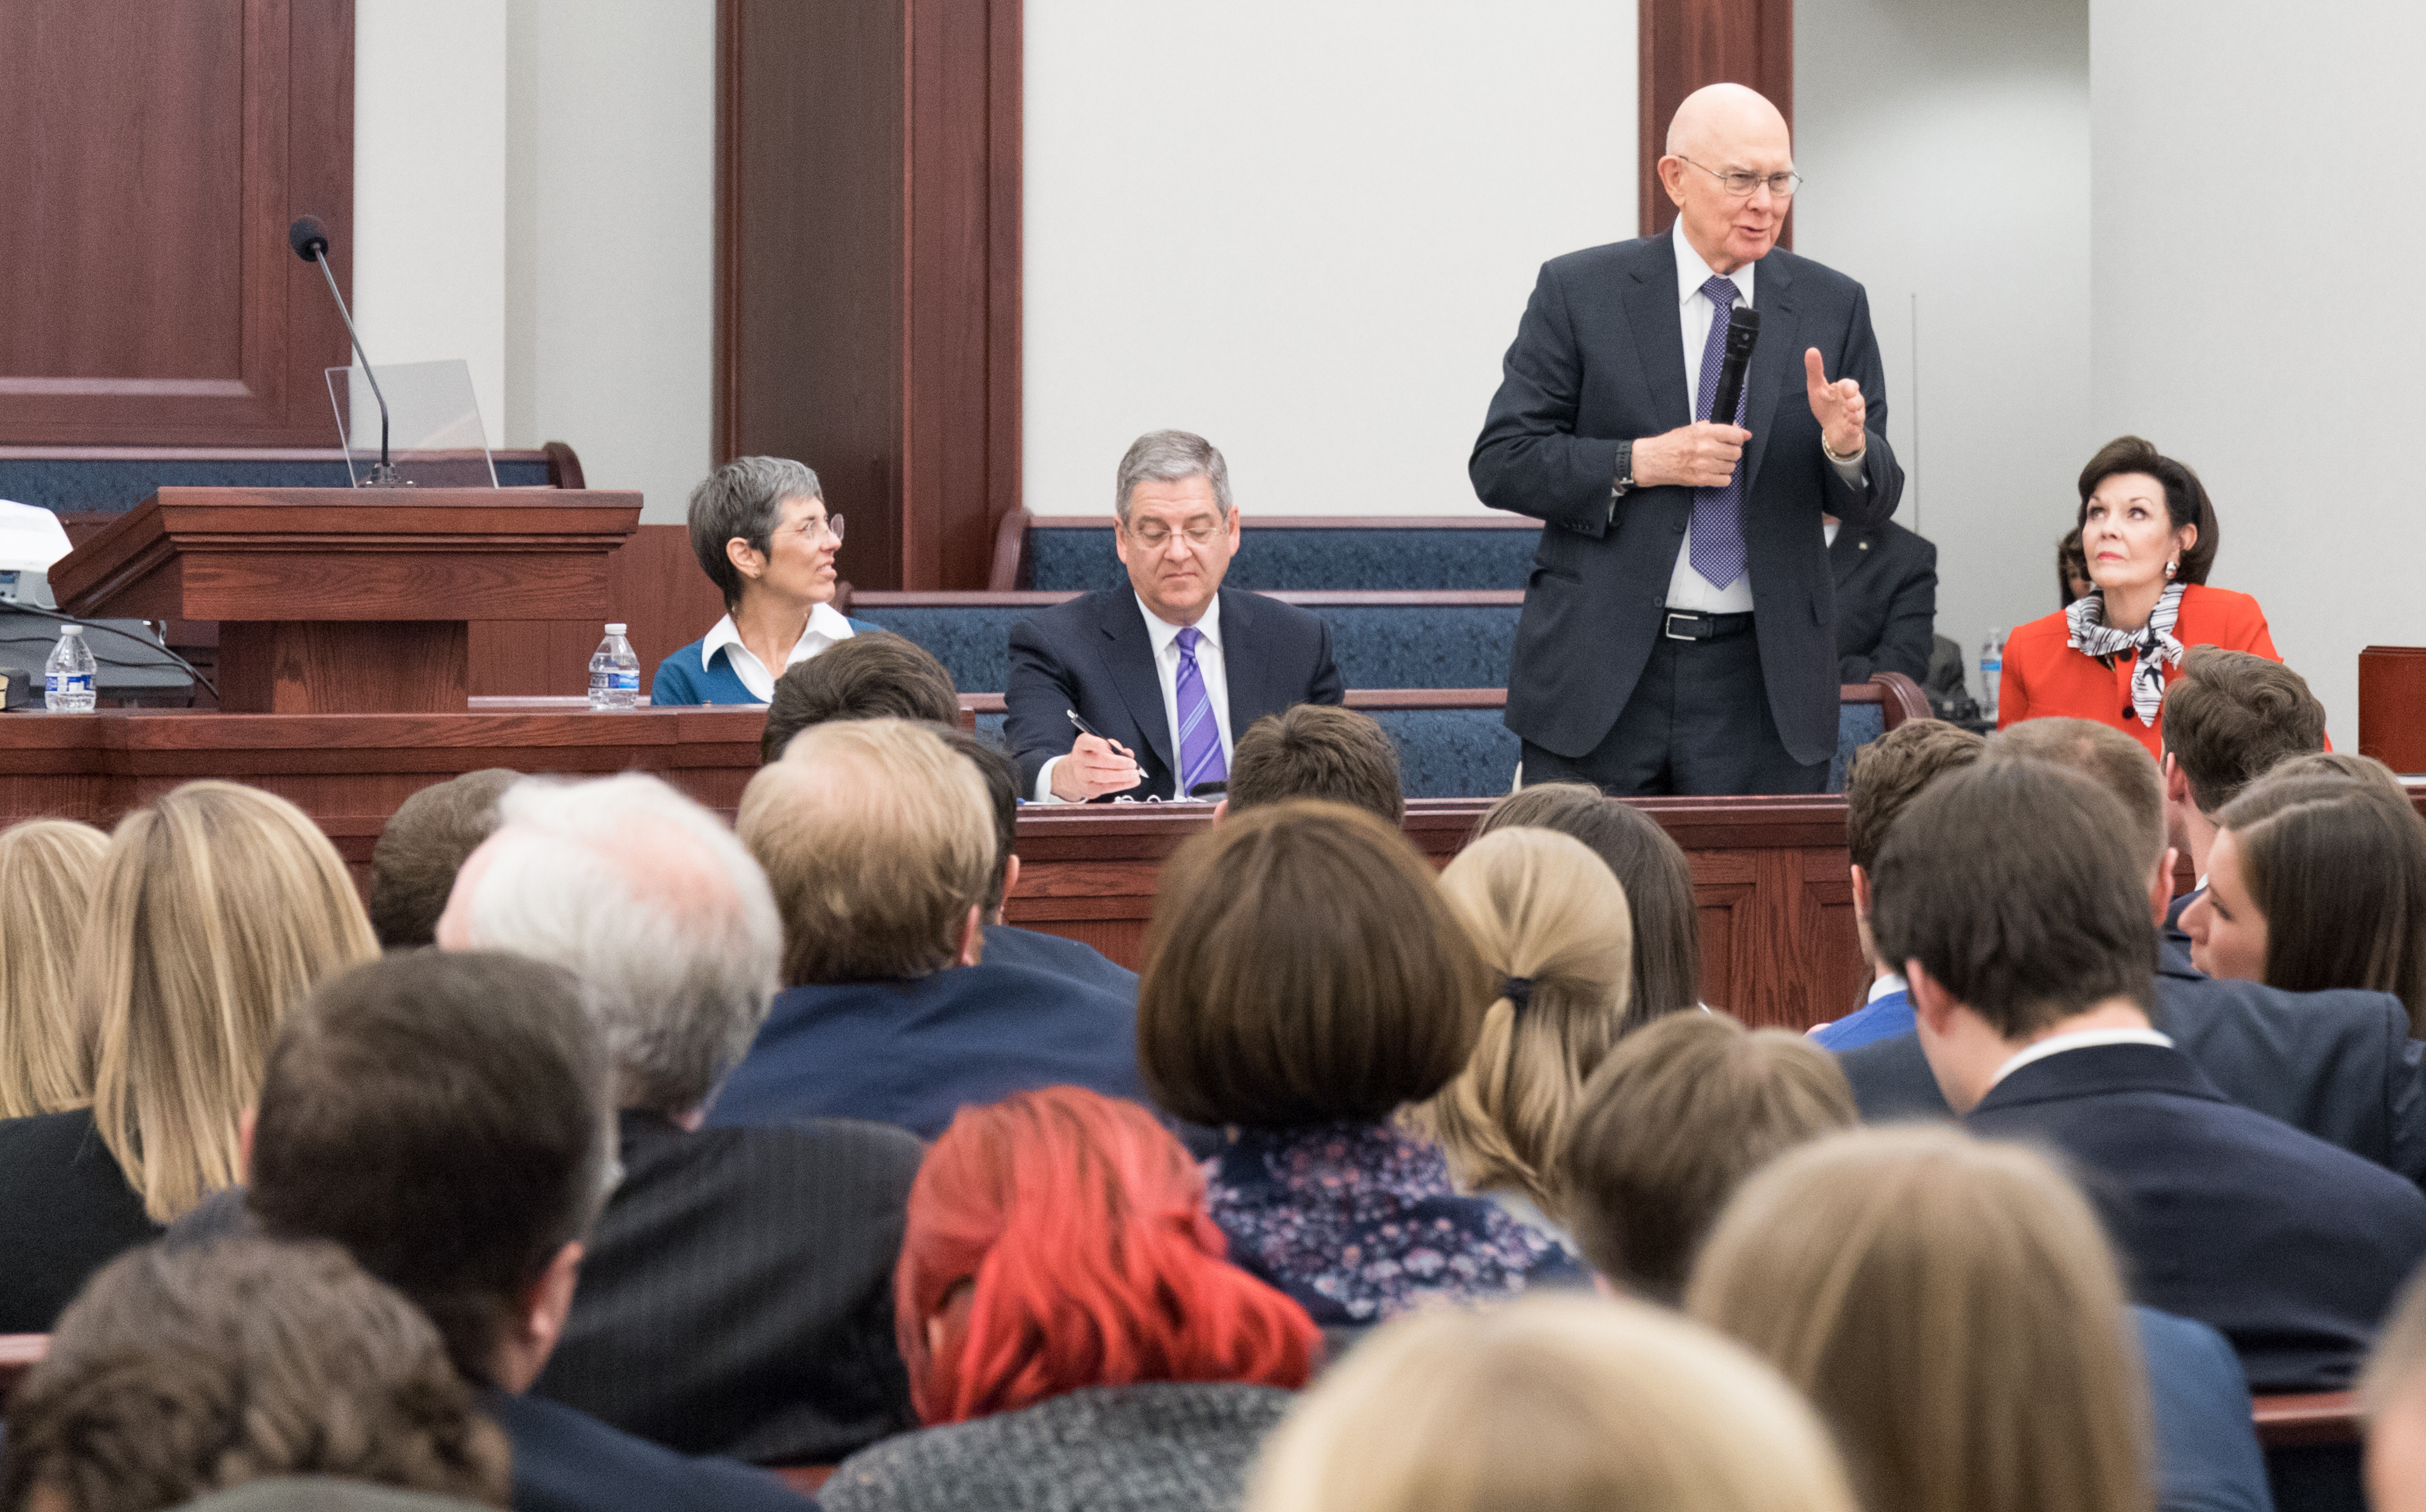 Presdient Dallin H. Oaks shares counsel during panel discussion at Feb. 2, 2019, young marrieds devotional in downtown Chicago.